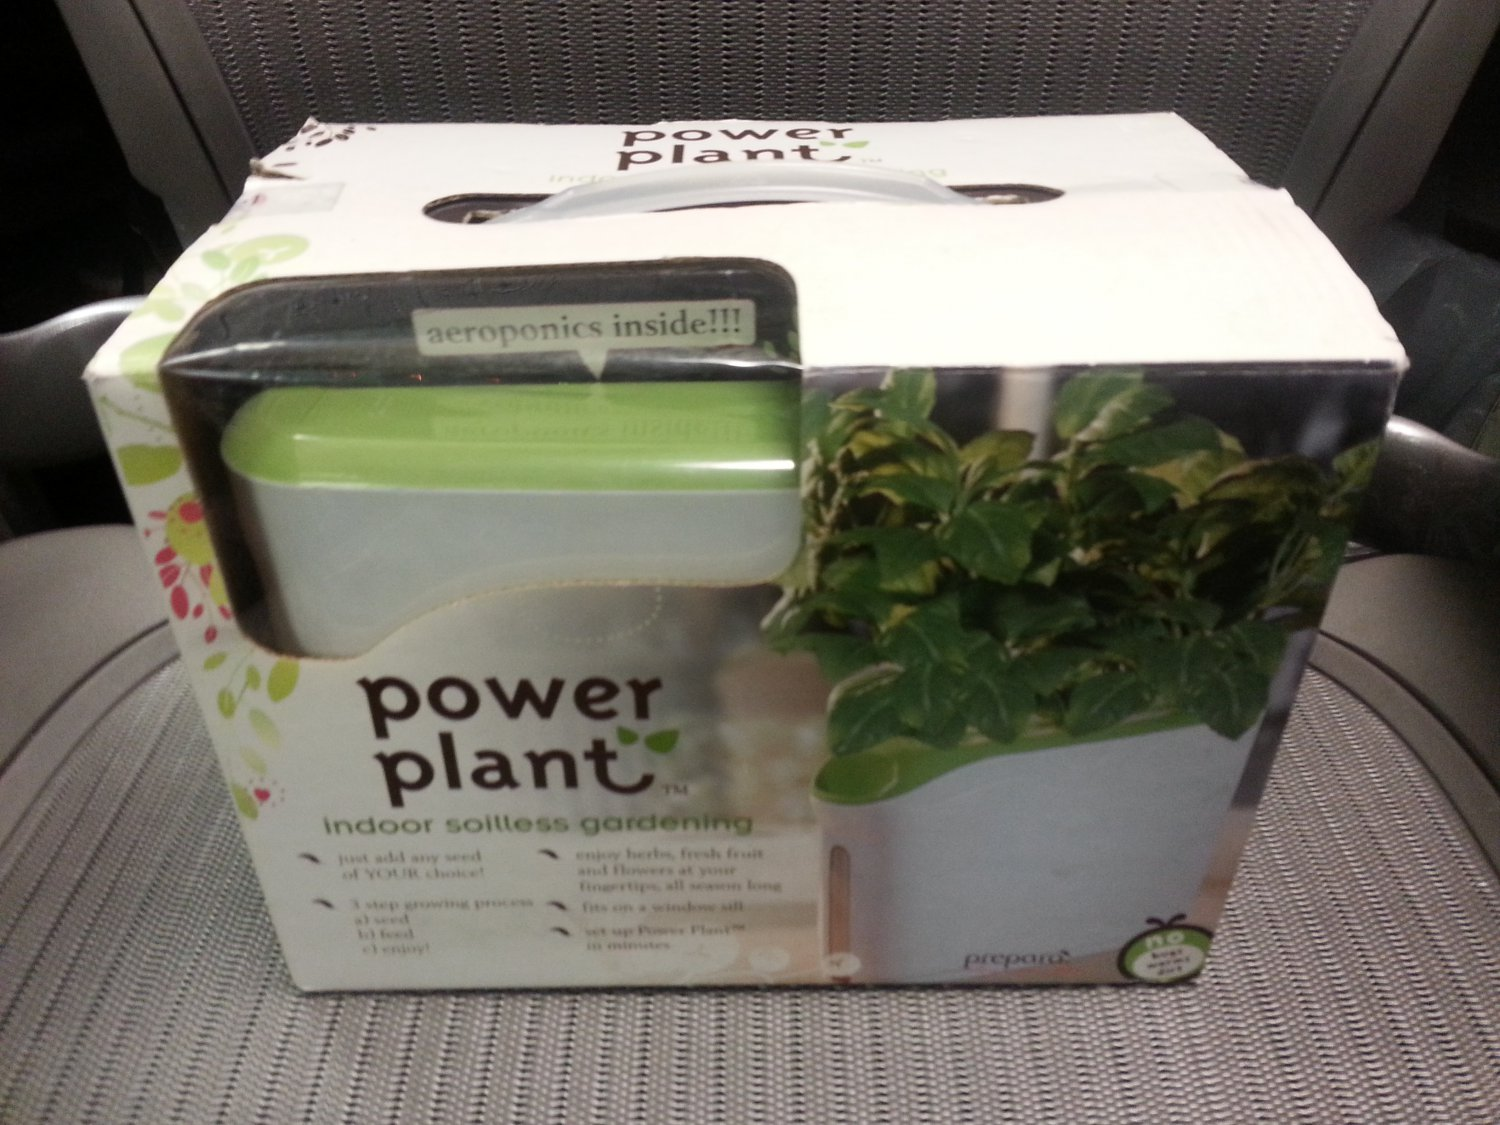 Prepara Power Plant Mini - Indoor Soilless Gardening system!